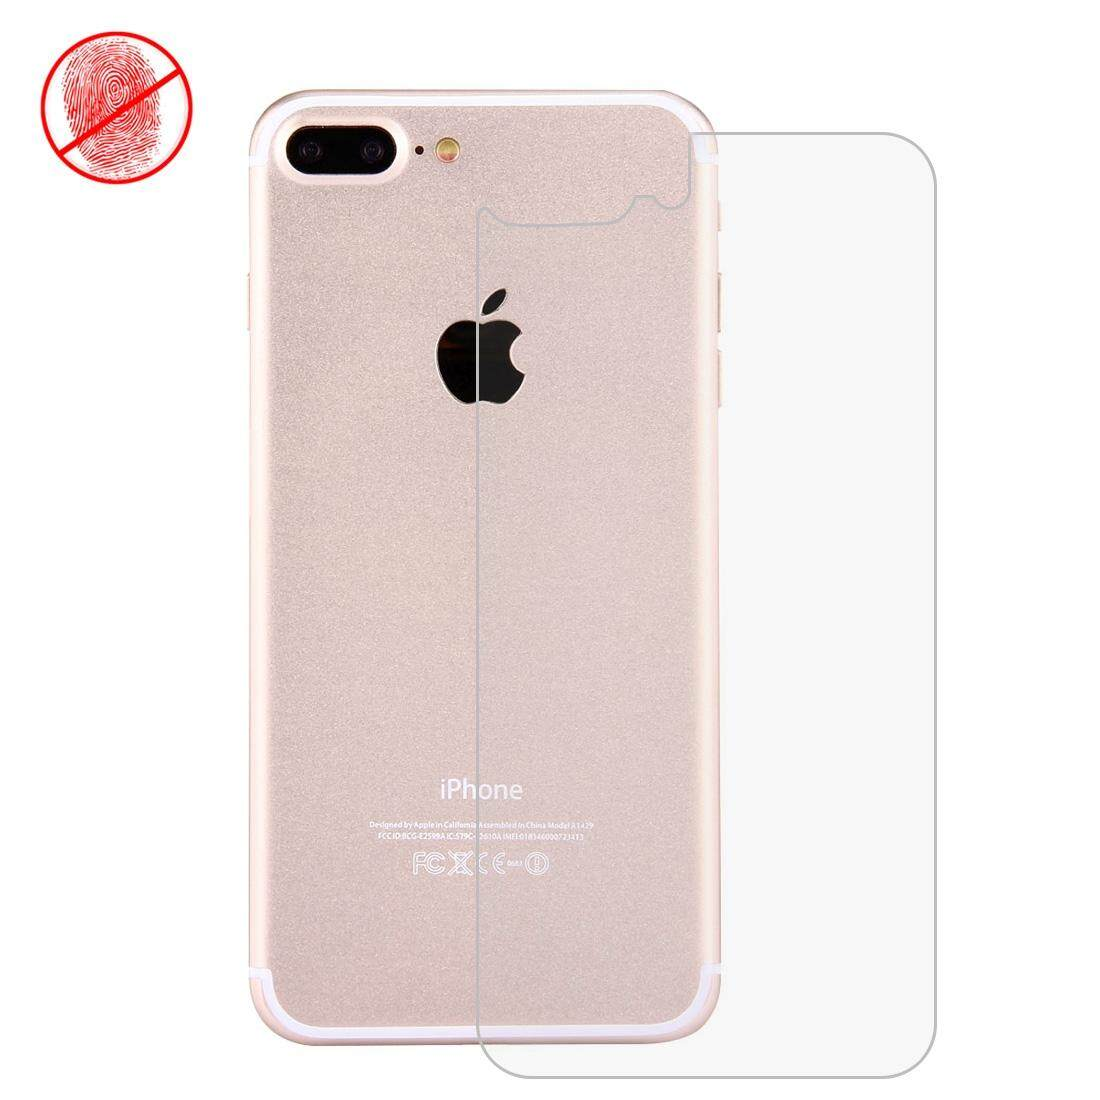 RUI HE For IPhone 7 Plus Anti-glare Back Screen Protector(Taiwan Material) - intl